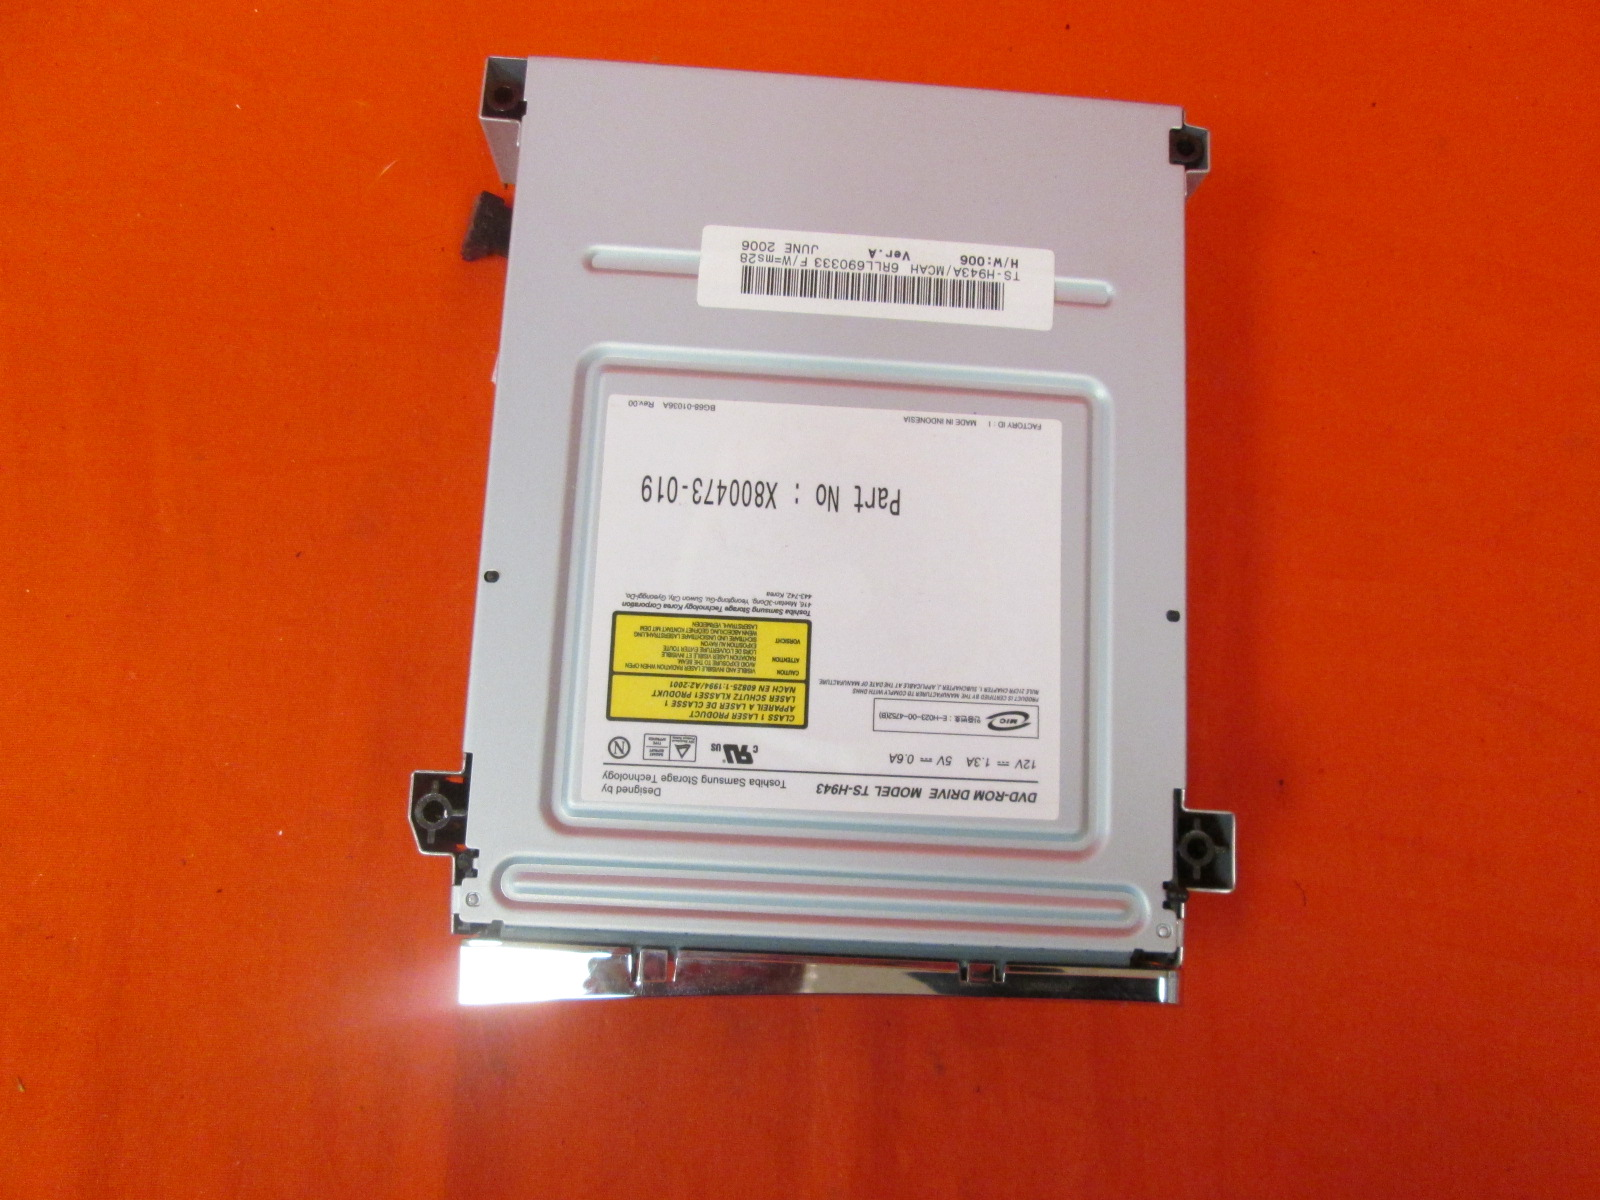 Microsoft OEM Replacement Drive For Xbox 360 Model TS-H943